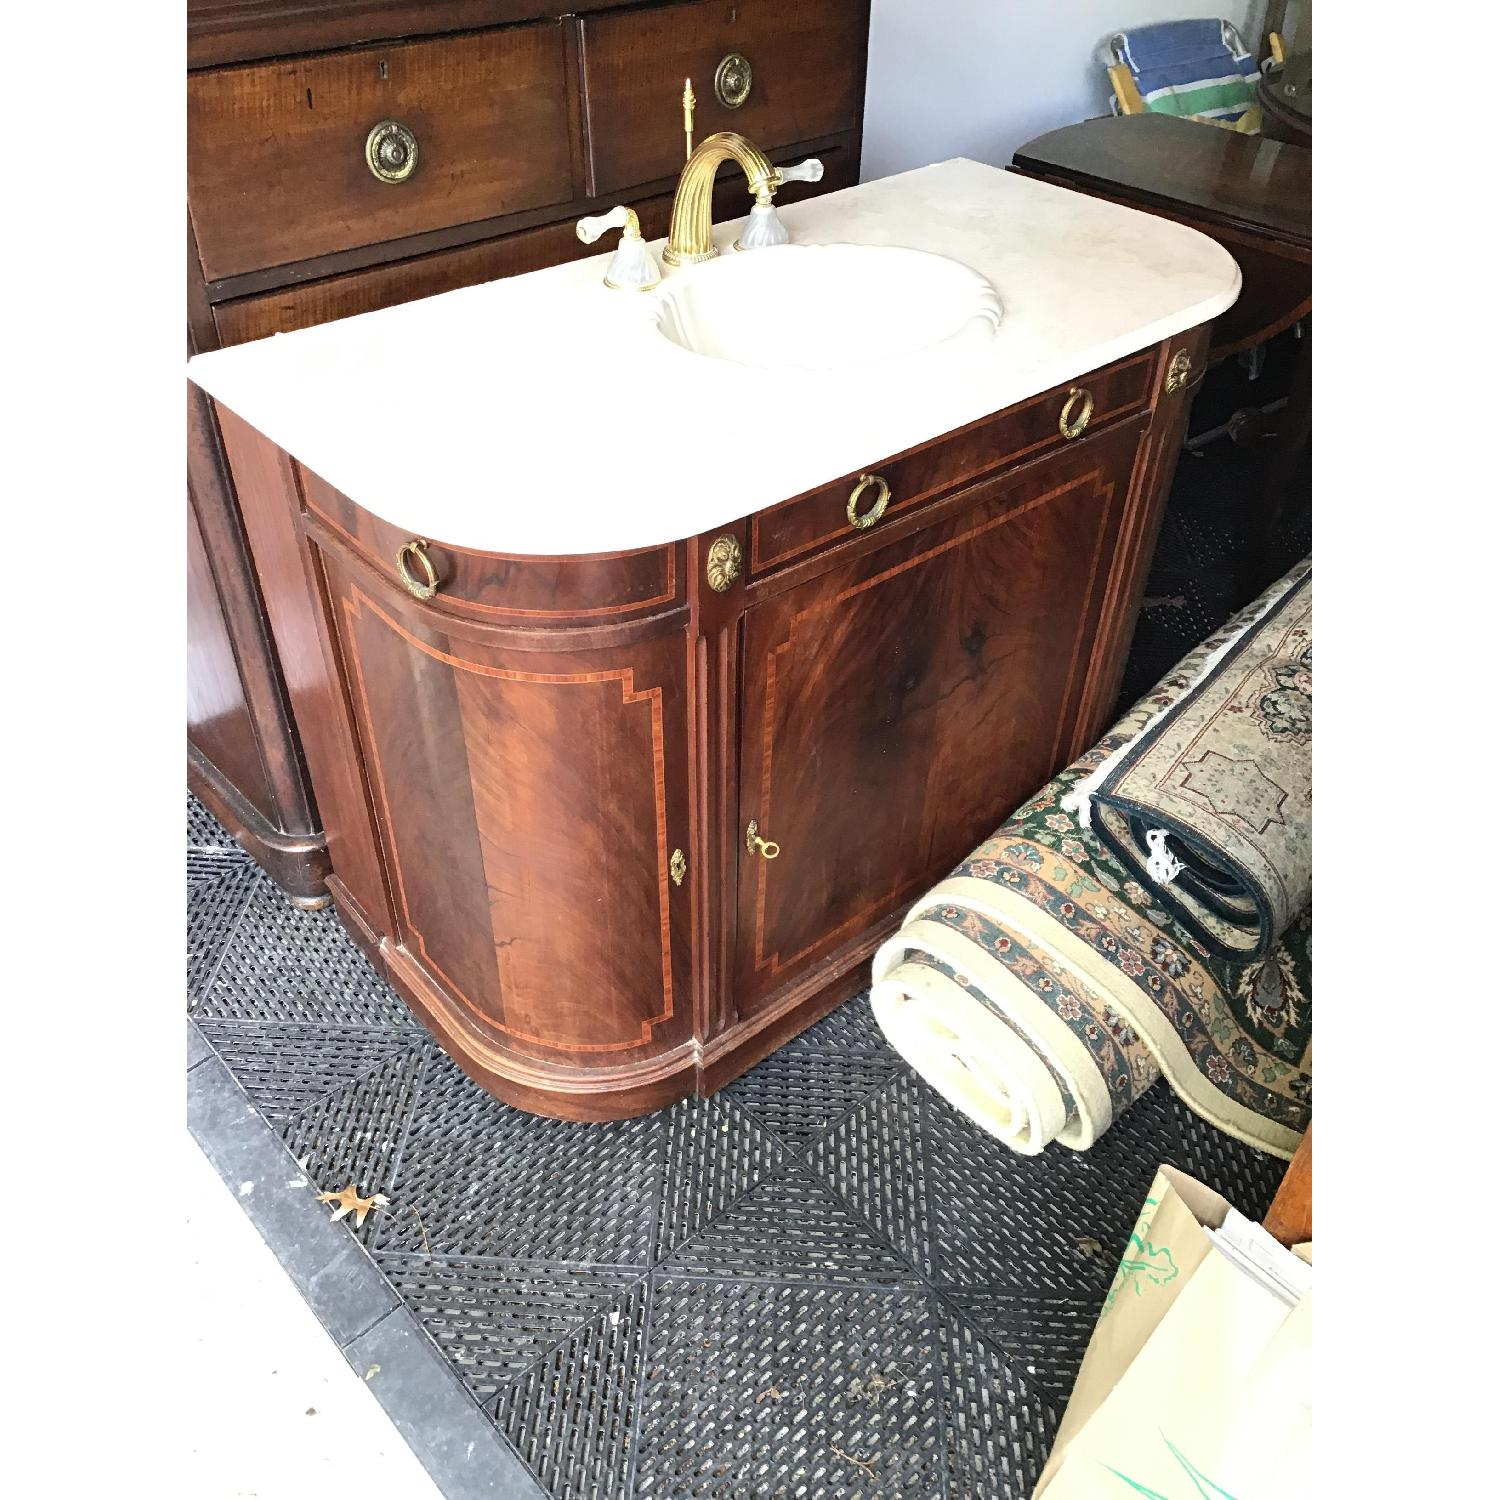 Phylrich Faucet Sink Mahogany Vanity-0